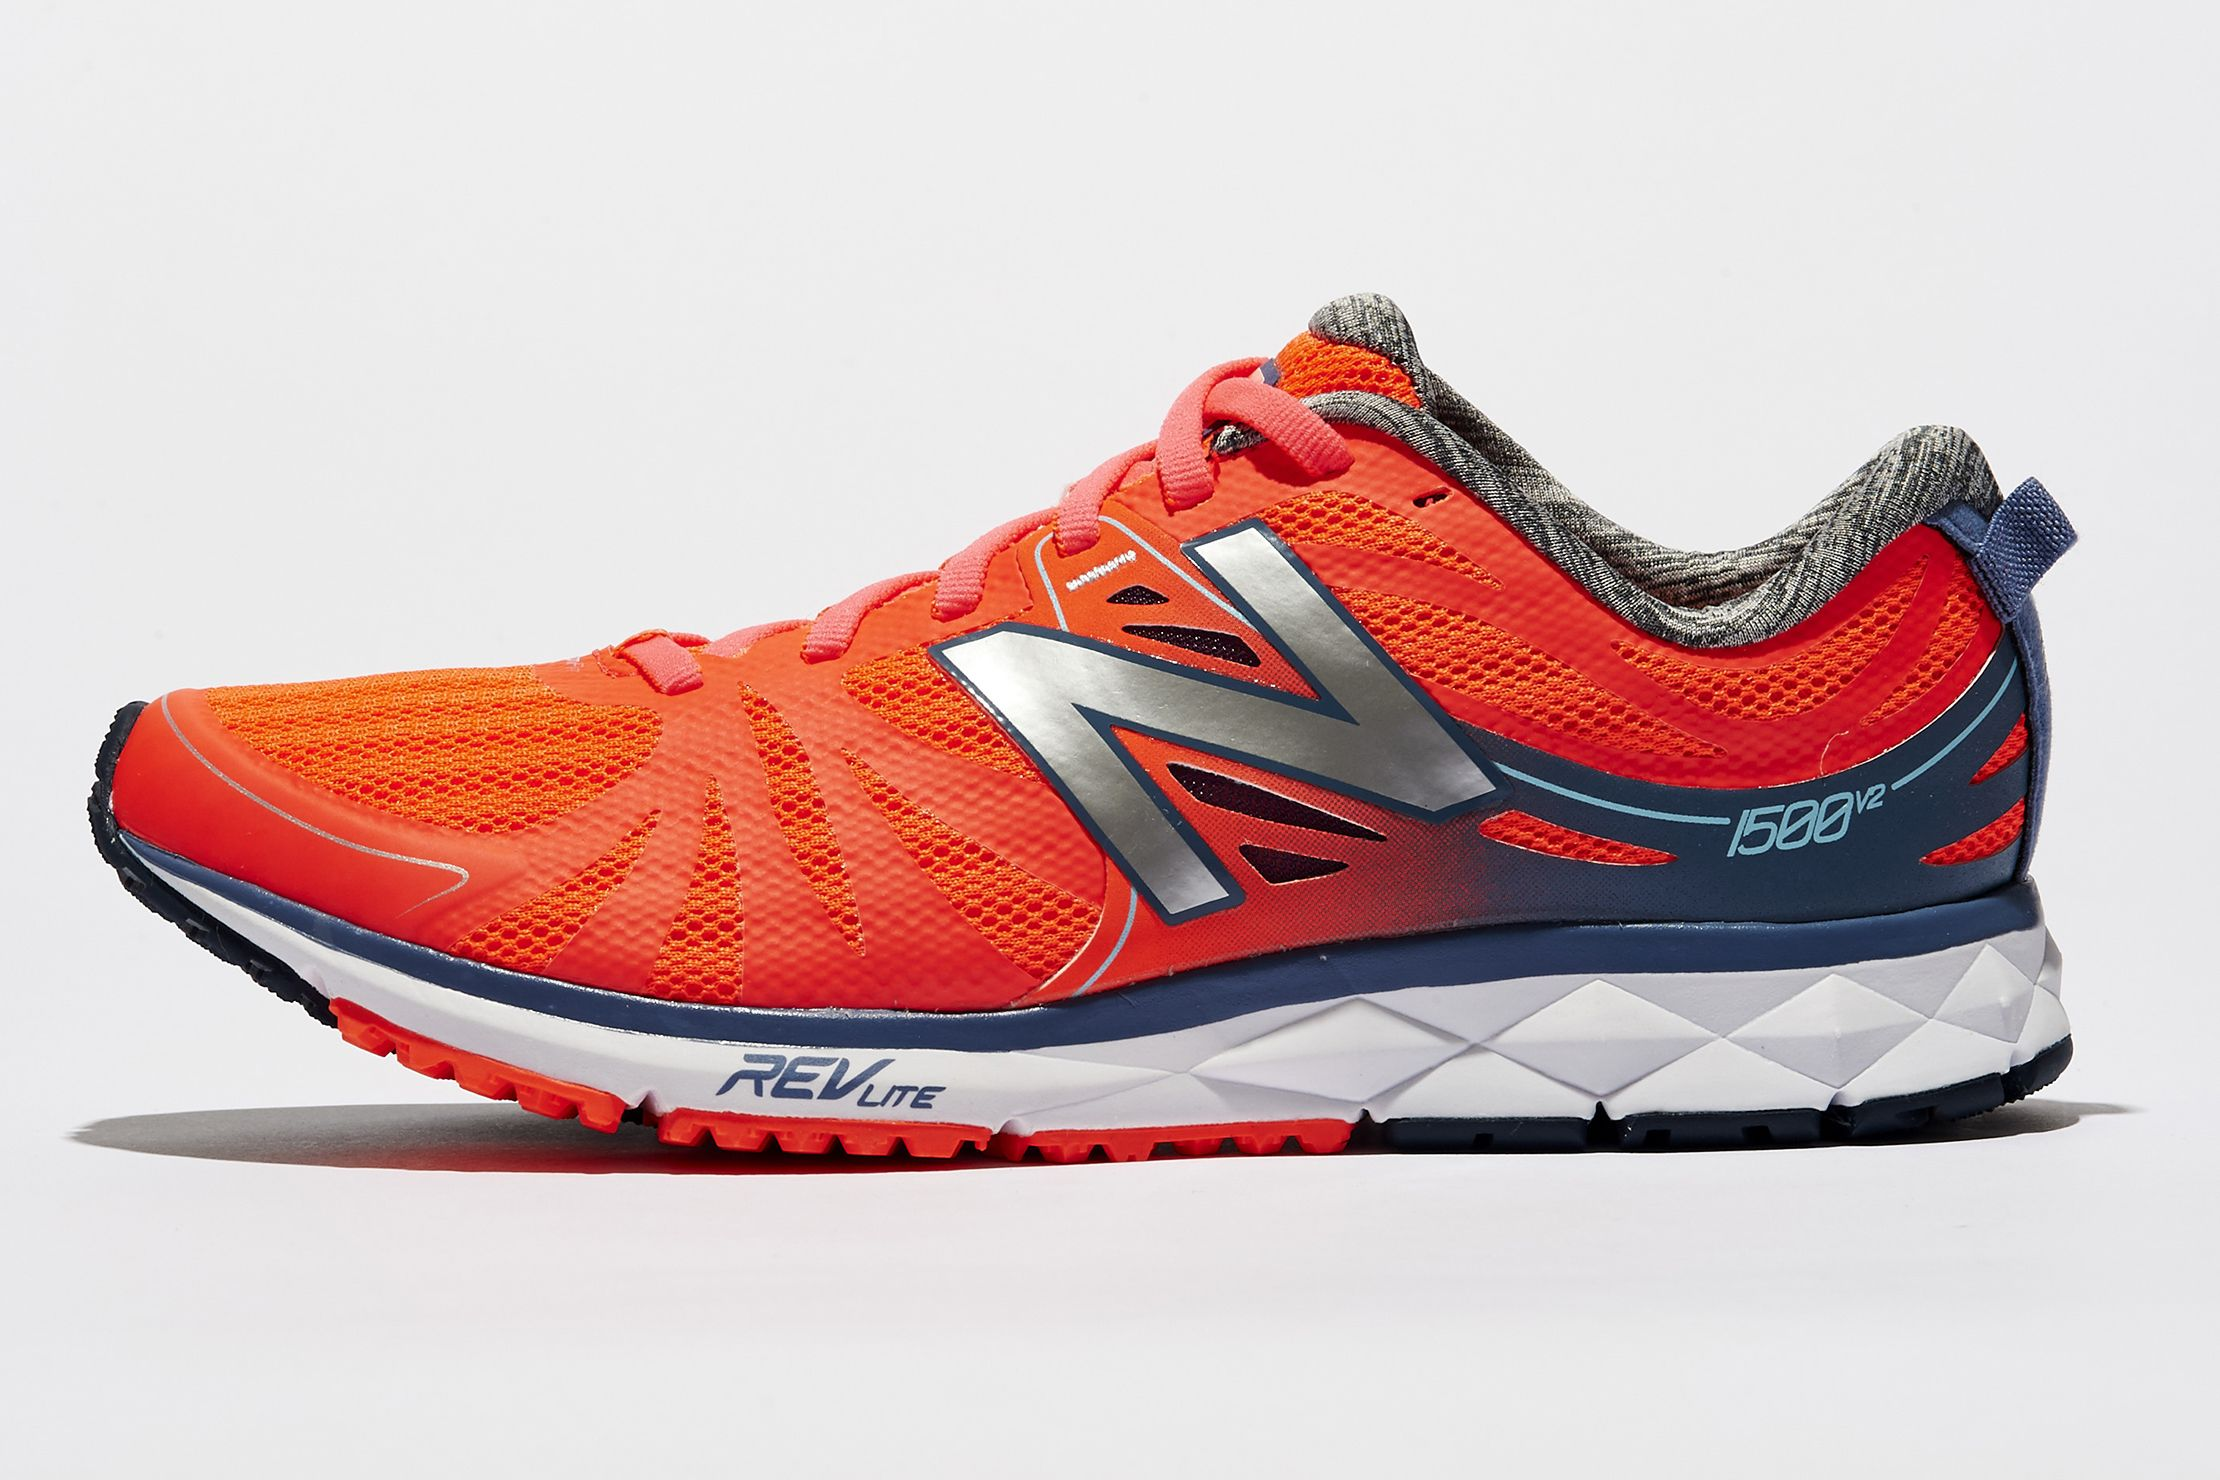 0089e7ff68 The Best Running Shoes of 2015 | Runner's World